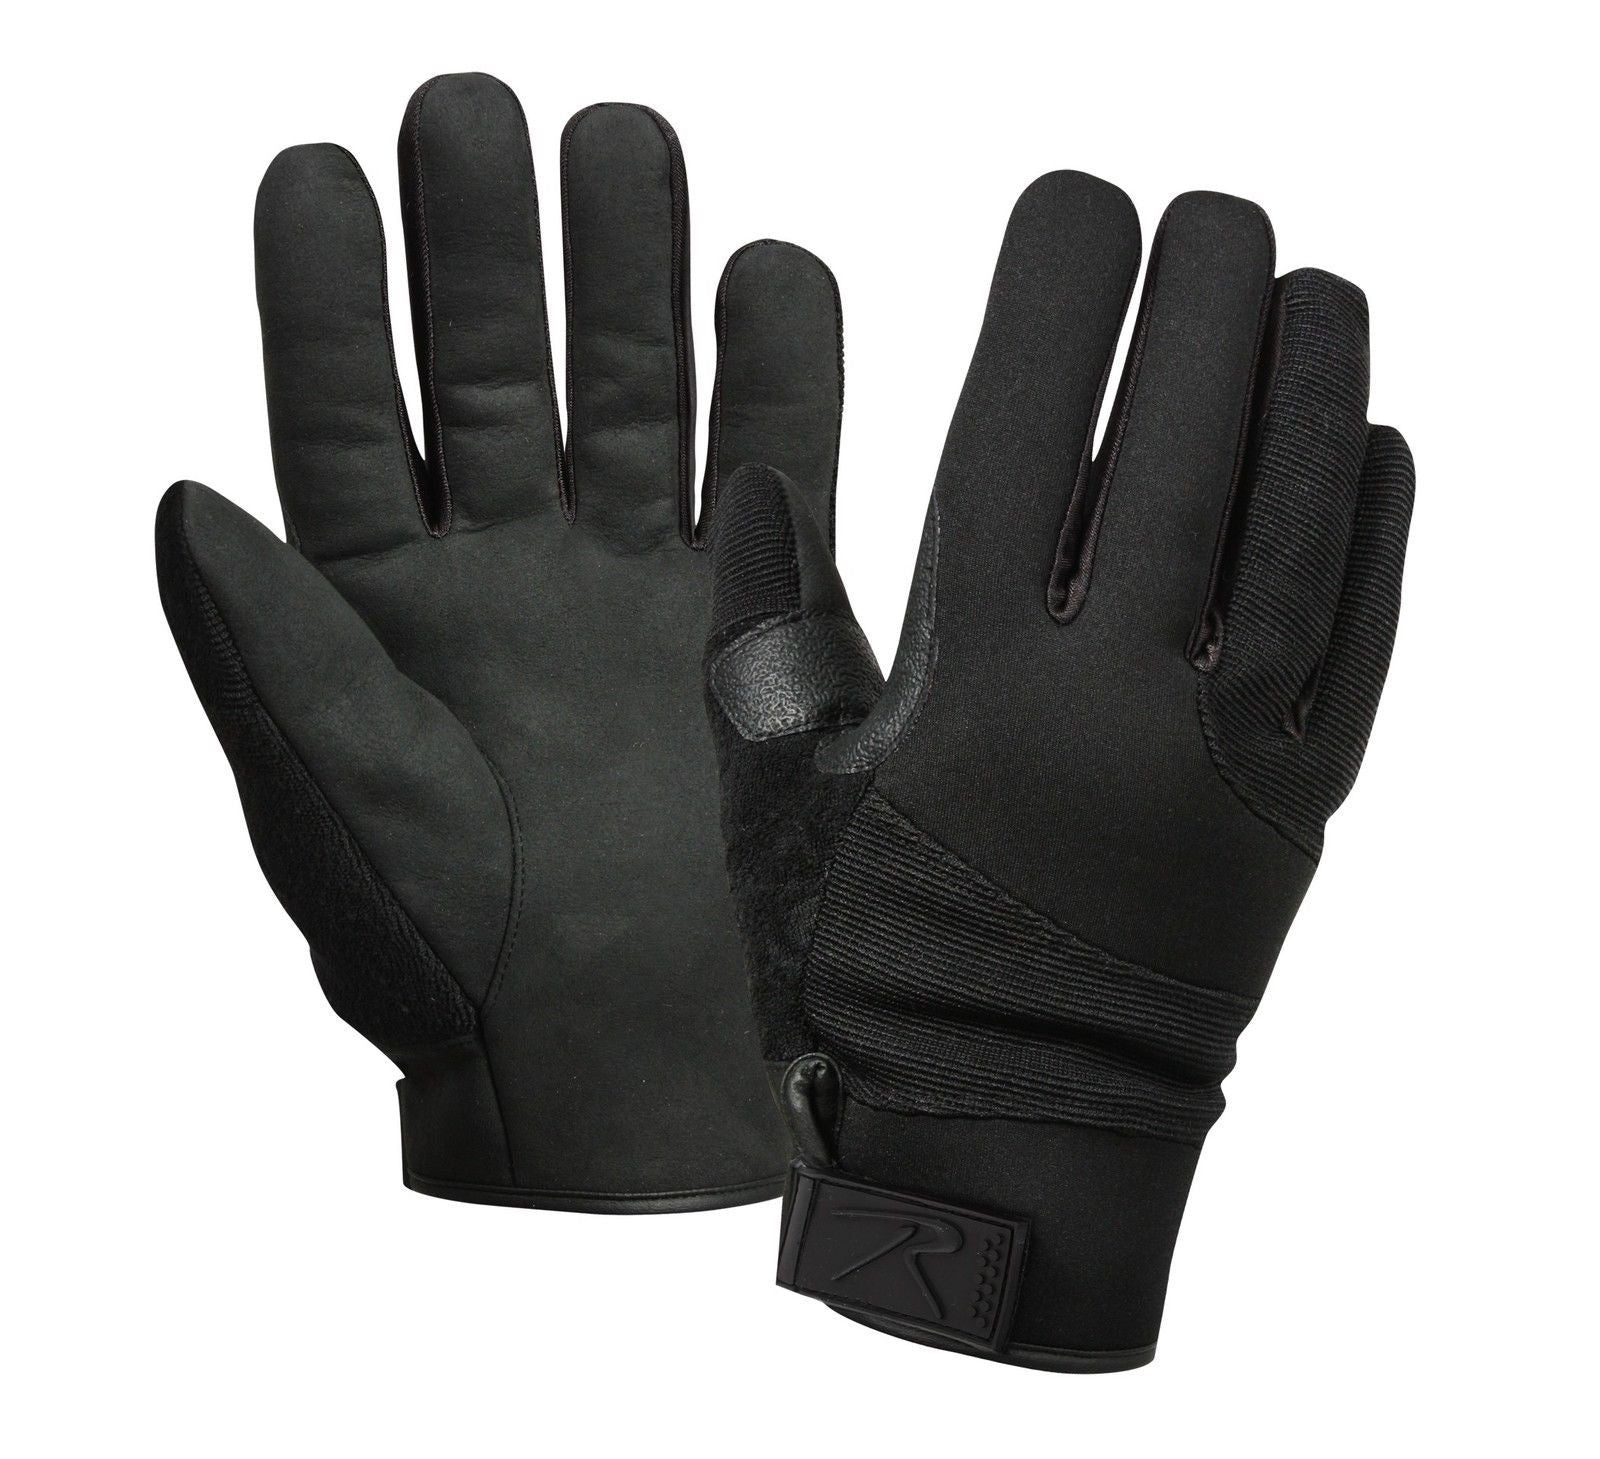 Black tactical gloves - Cold Weather Street Shield Cut Resistant Black Tactical Gloves